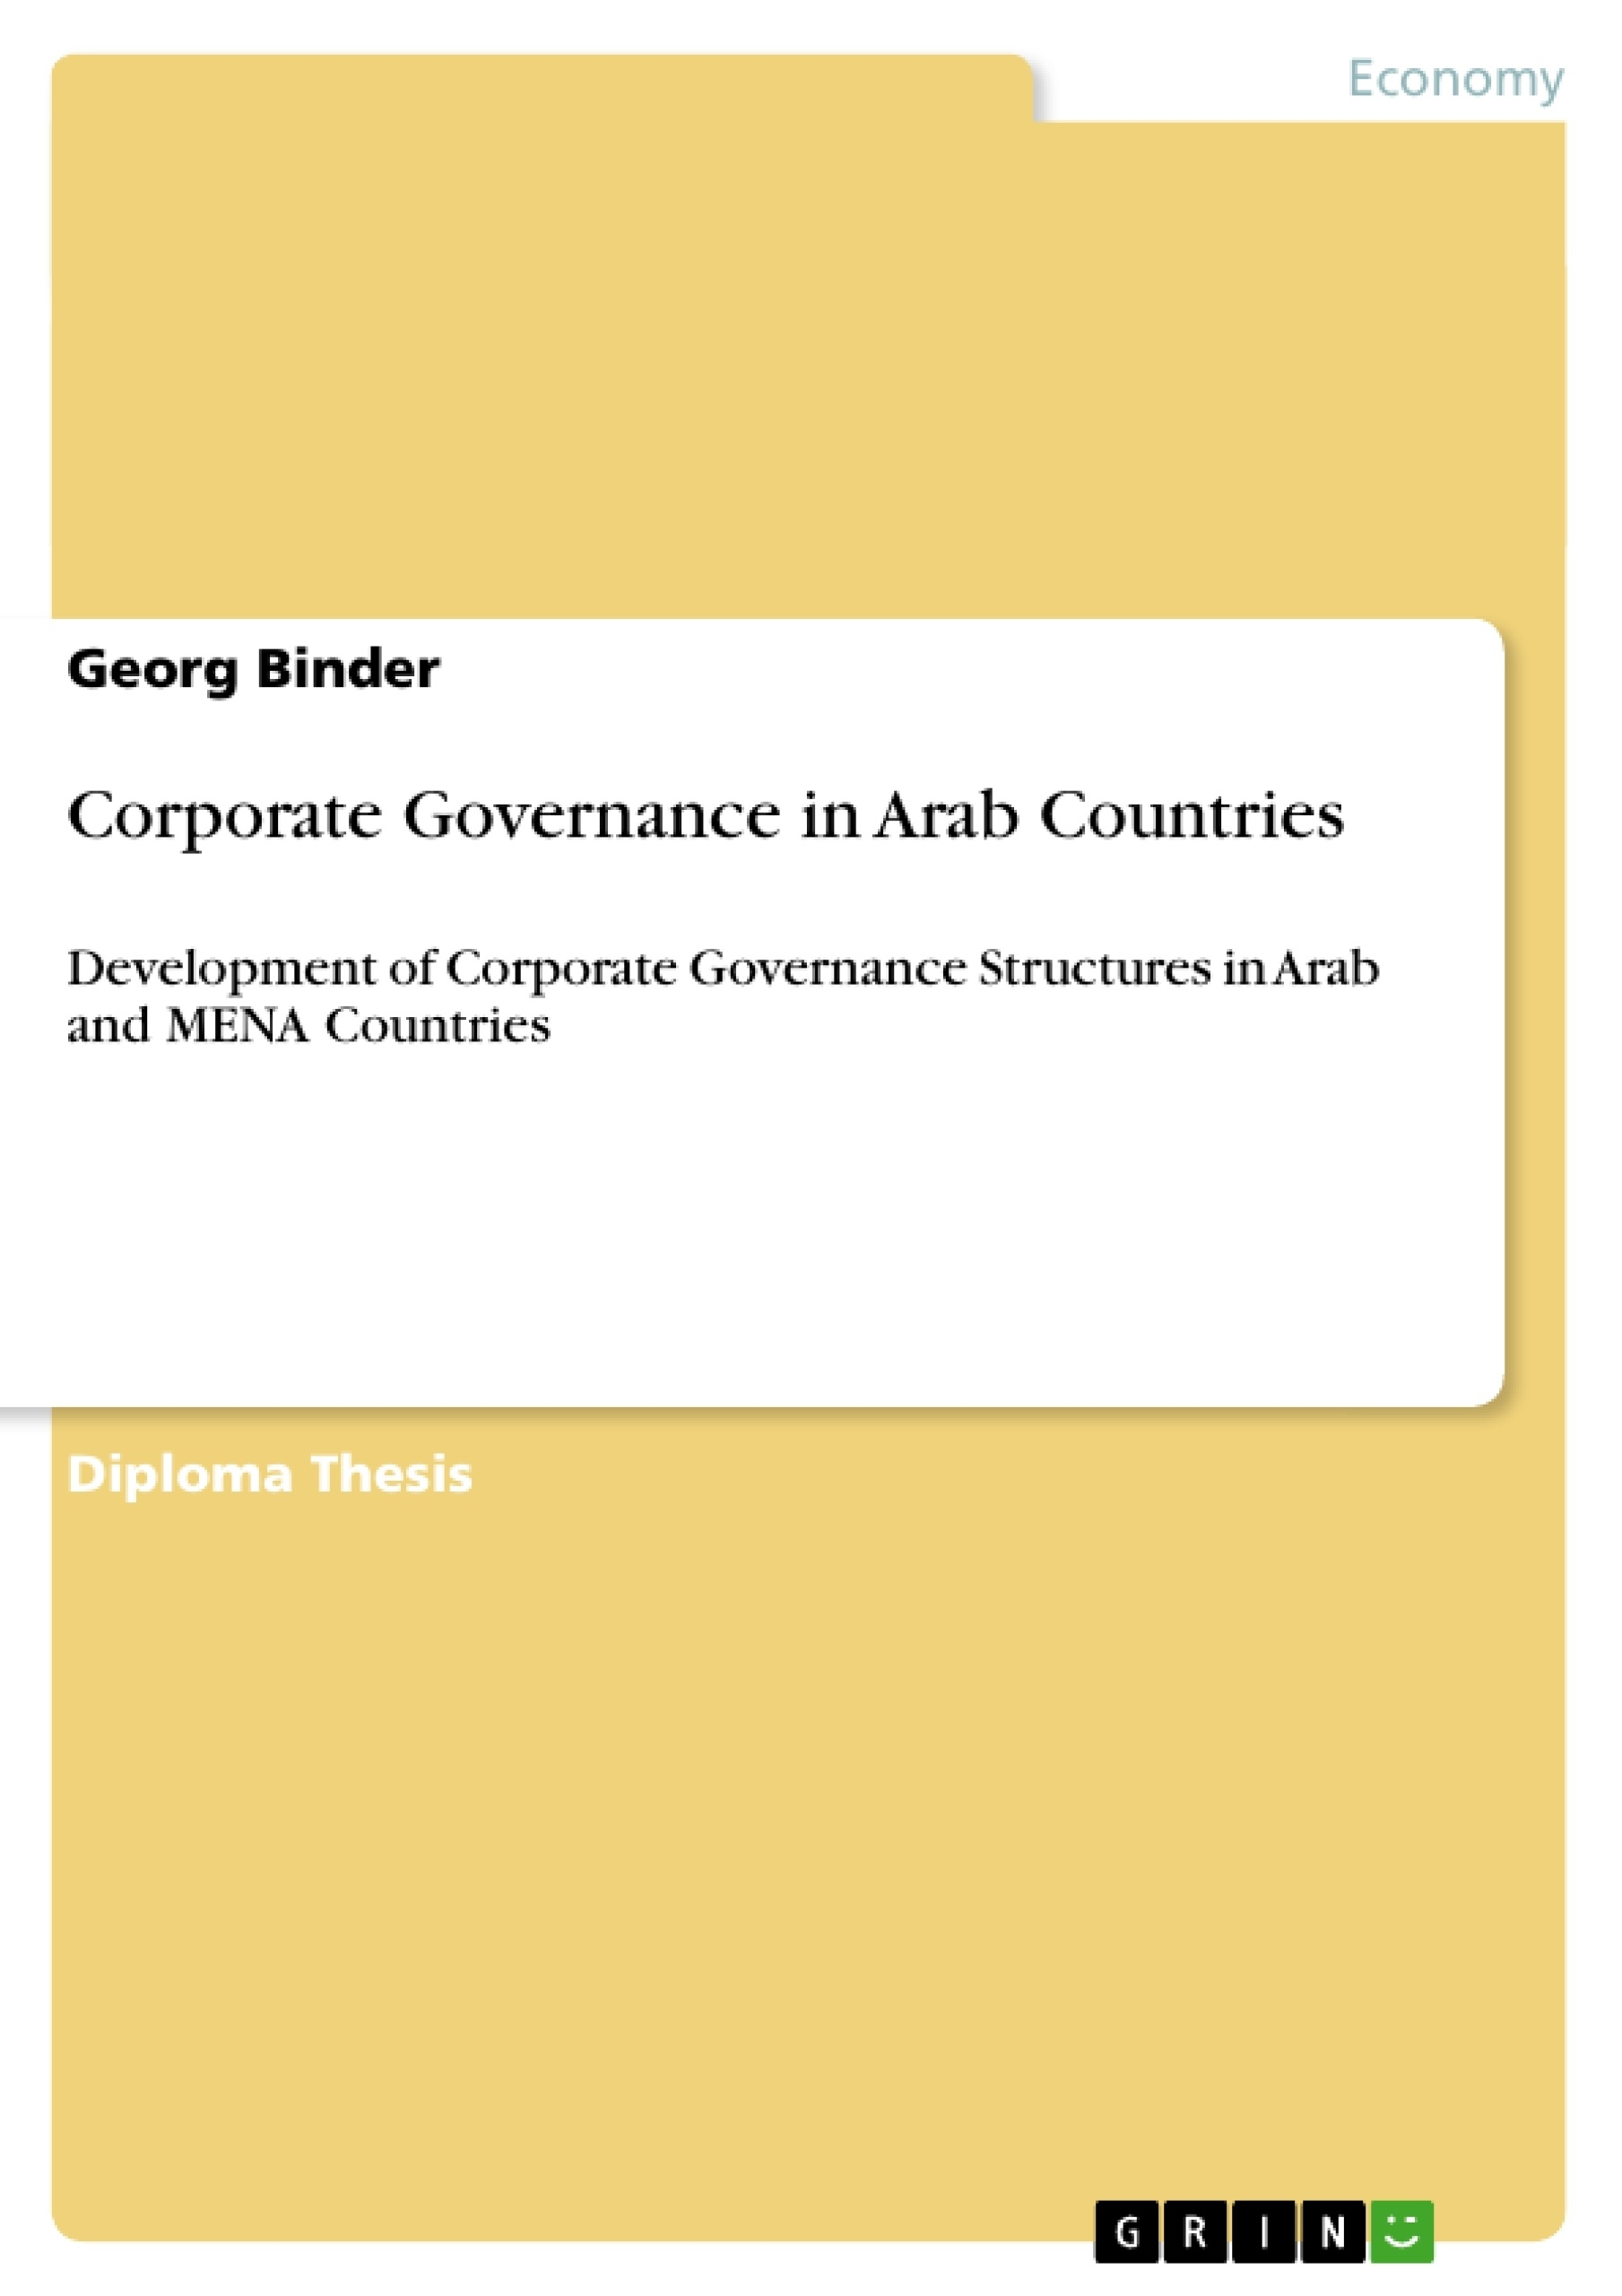 Master thesis corporate governance